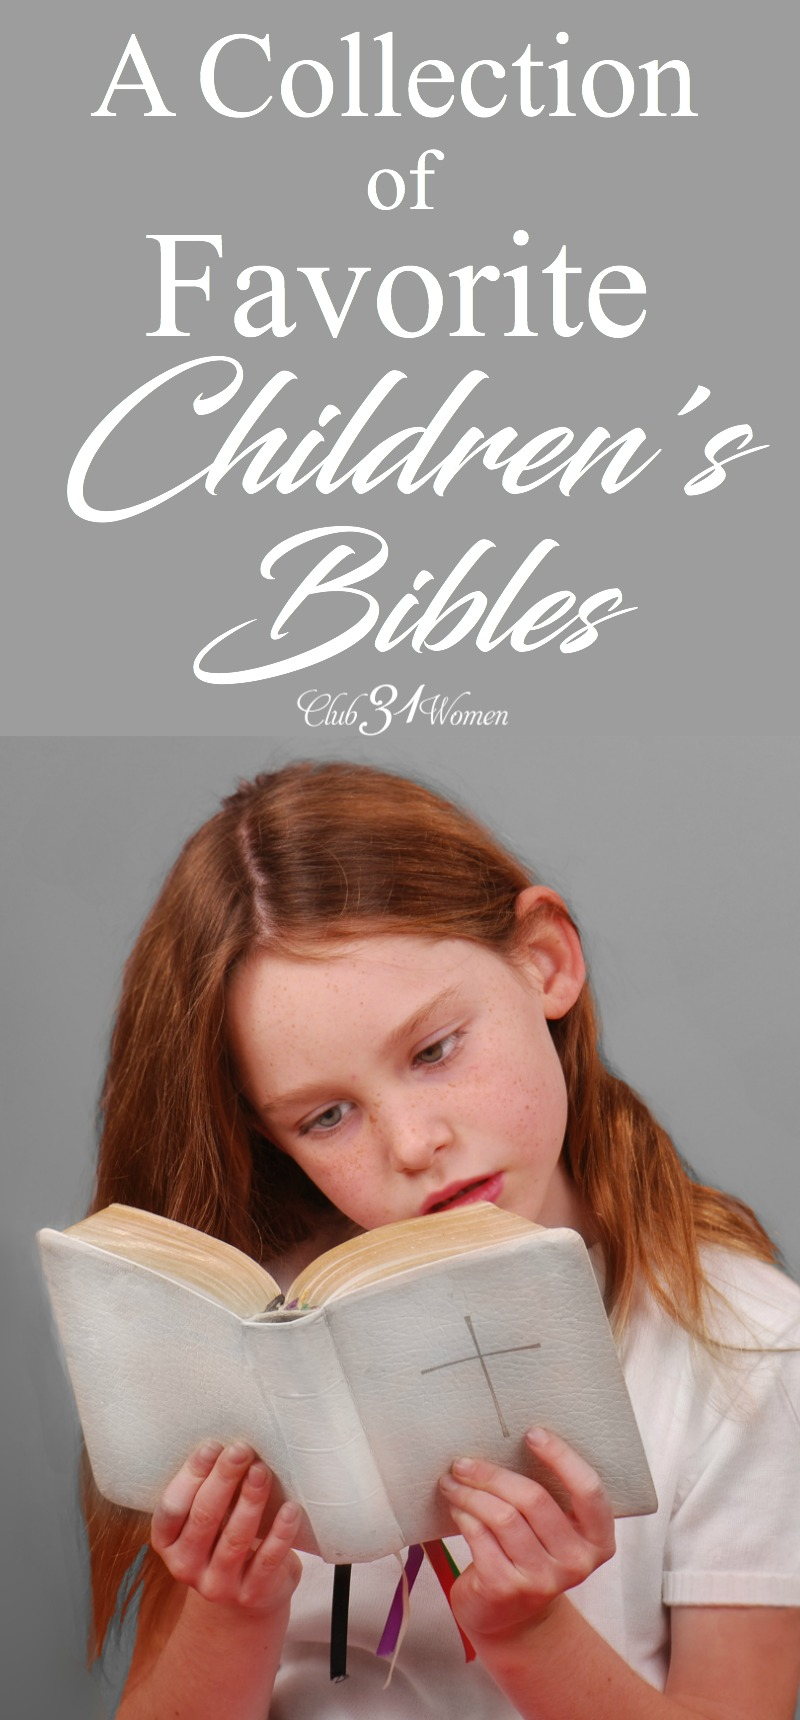 Having a good, solid children's Bible is important as our children grow and their spiritual lives develop. Here is a list of favorite children's bibles. via @Club31Women